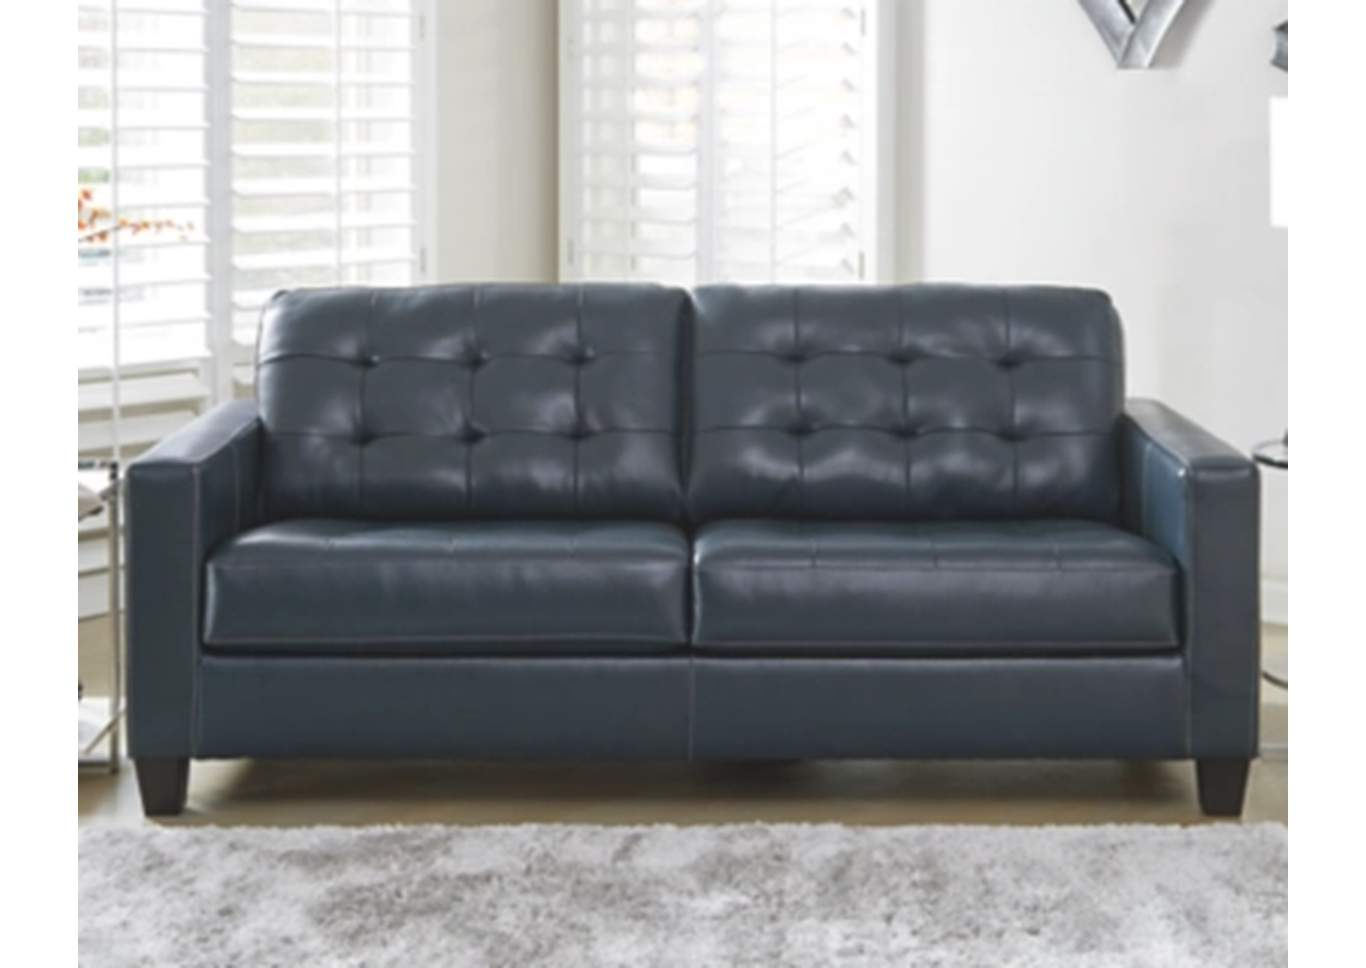 Altonbury Queen Sofa Sleeper,Signature Design By Ashley